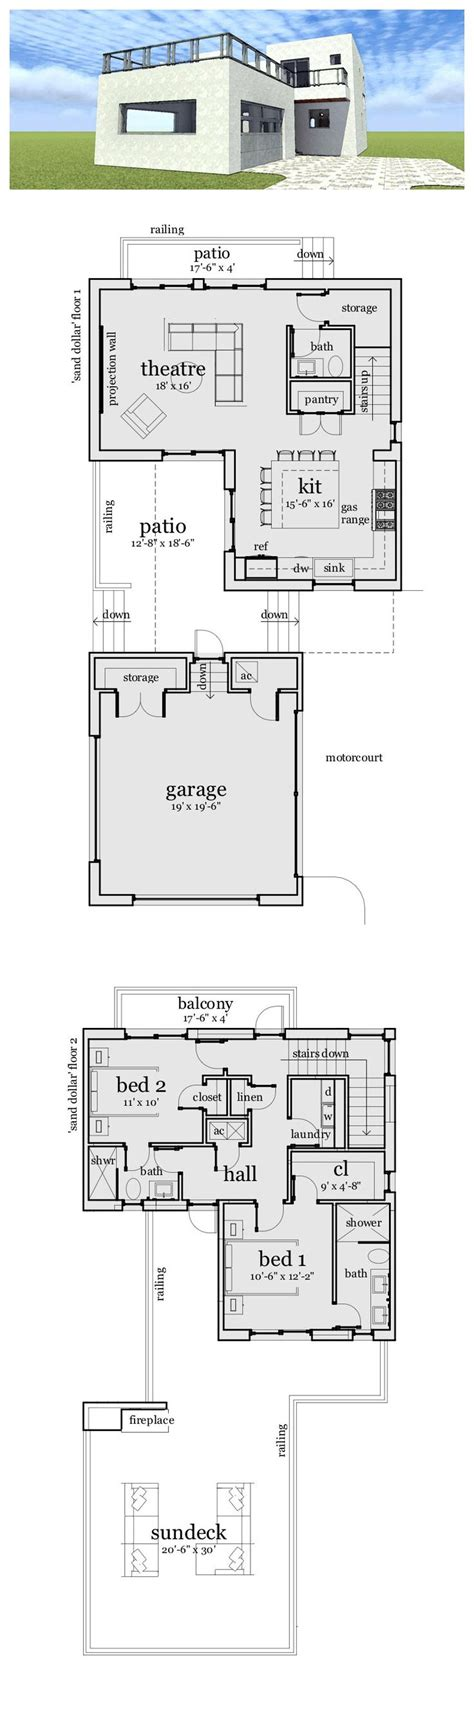 17 best images about house plan magazines on pinterest 17 simple large luxury home plans ideas photo new at cute